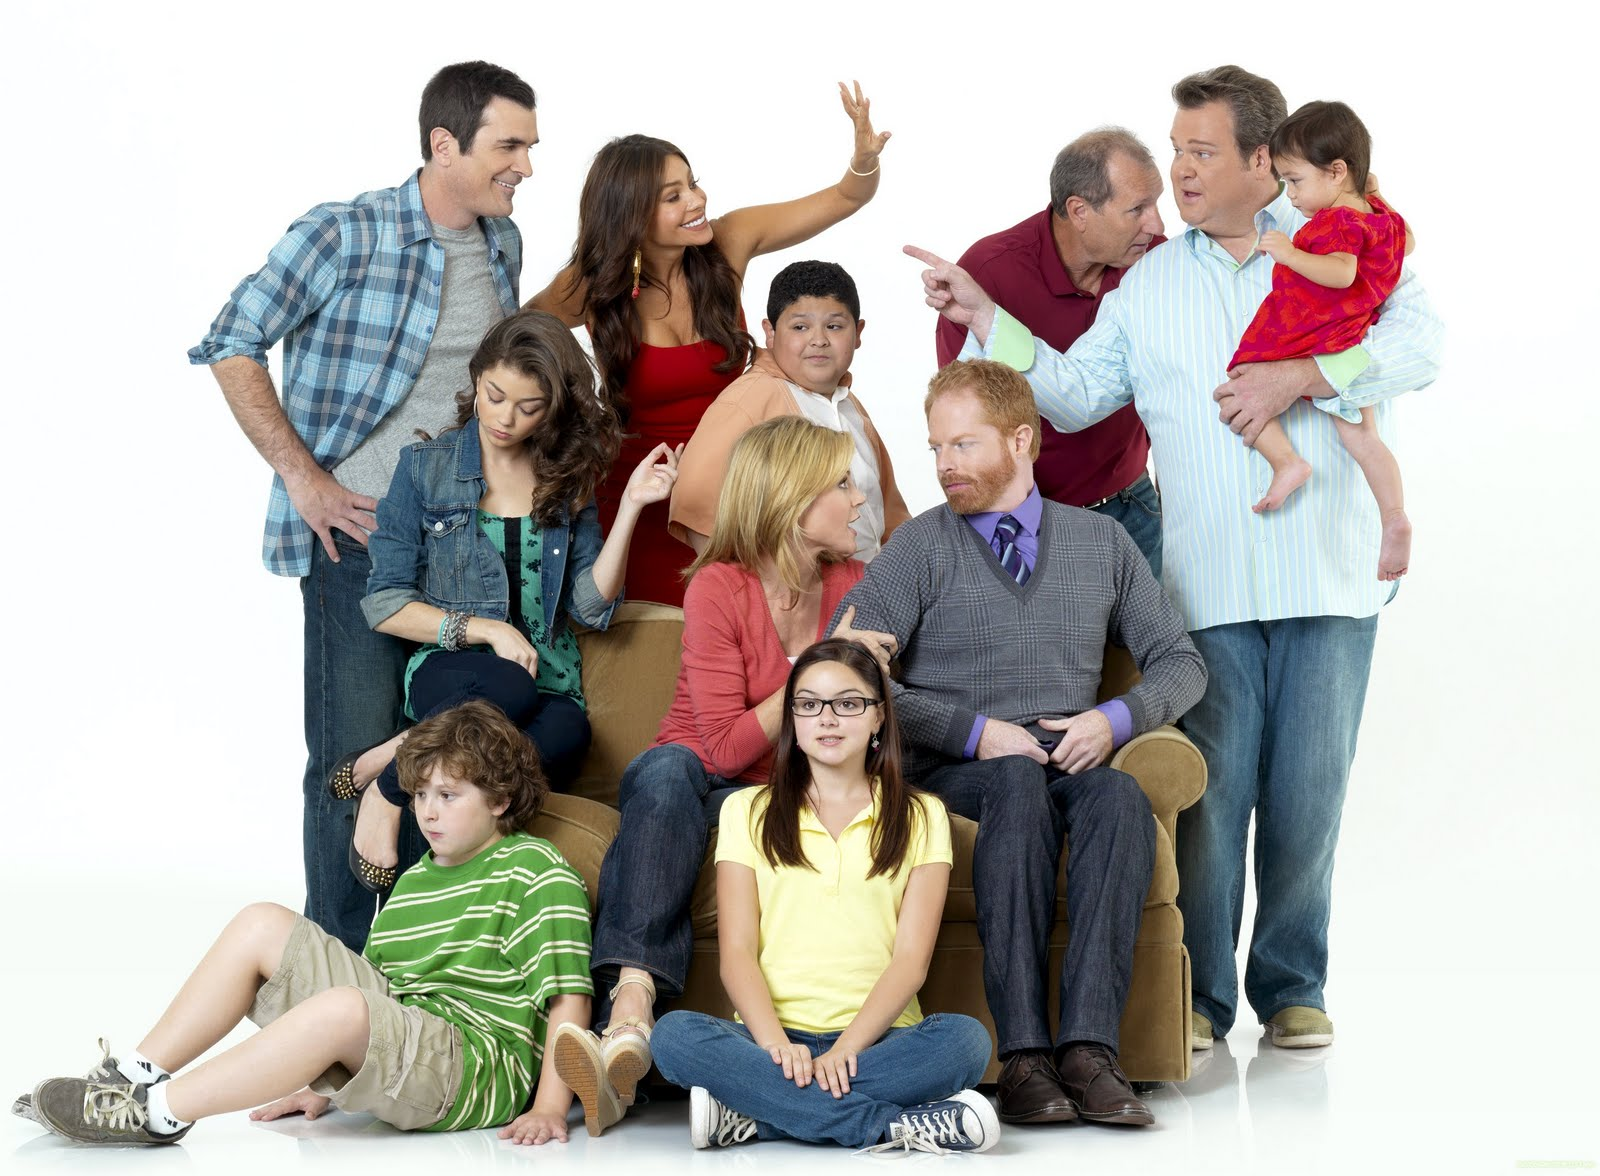 modern family wallpaper and background image 1600x1176